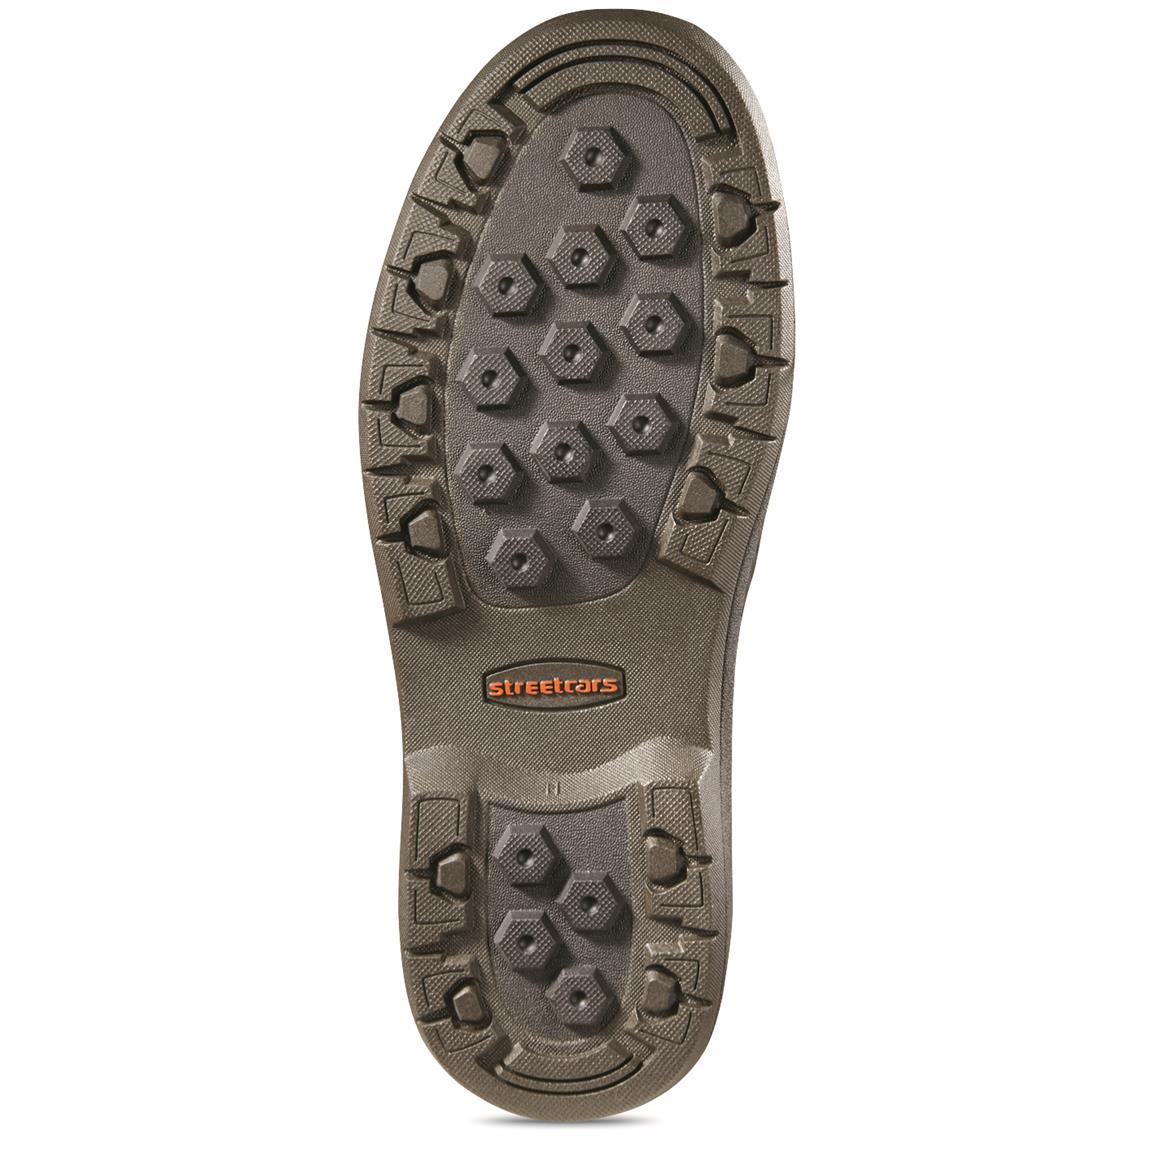 Traction rubber outsole for no-slip grip